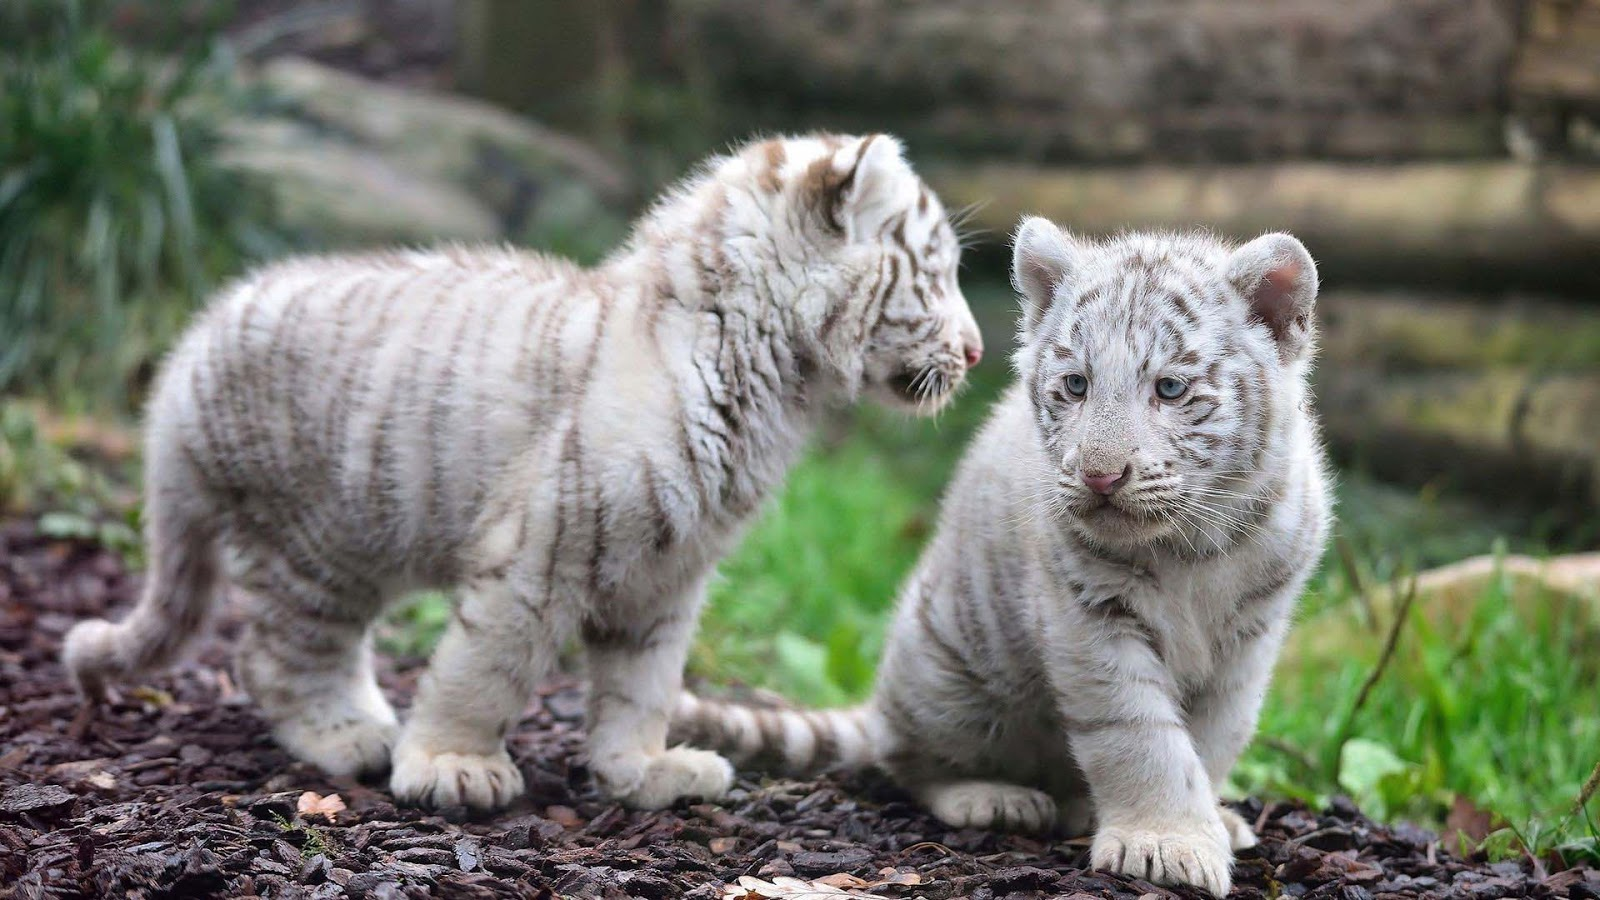 <b>Tiger Cubs Wallpaper</b>